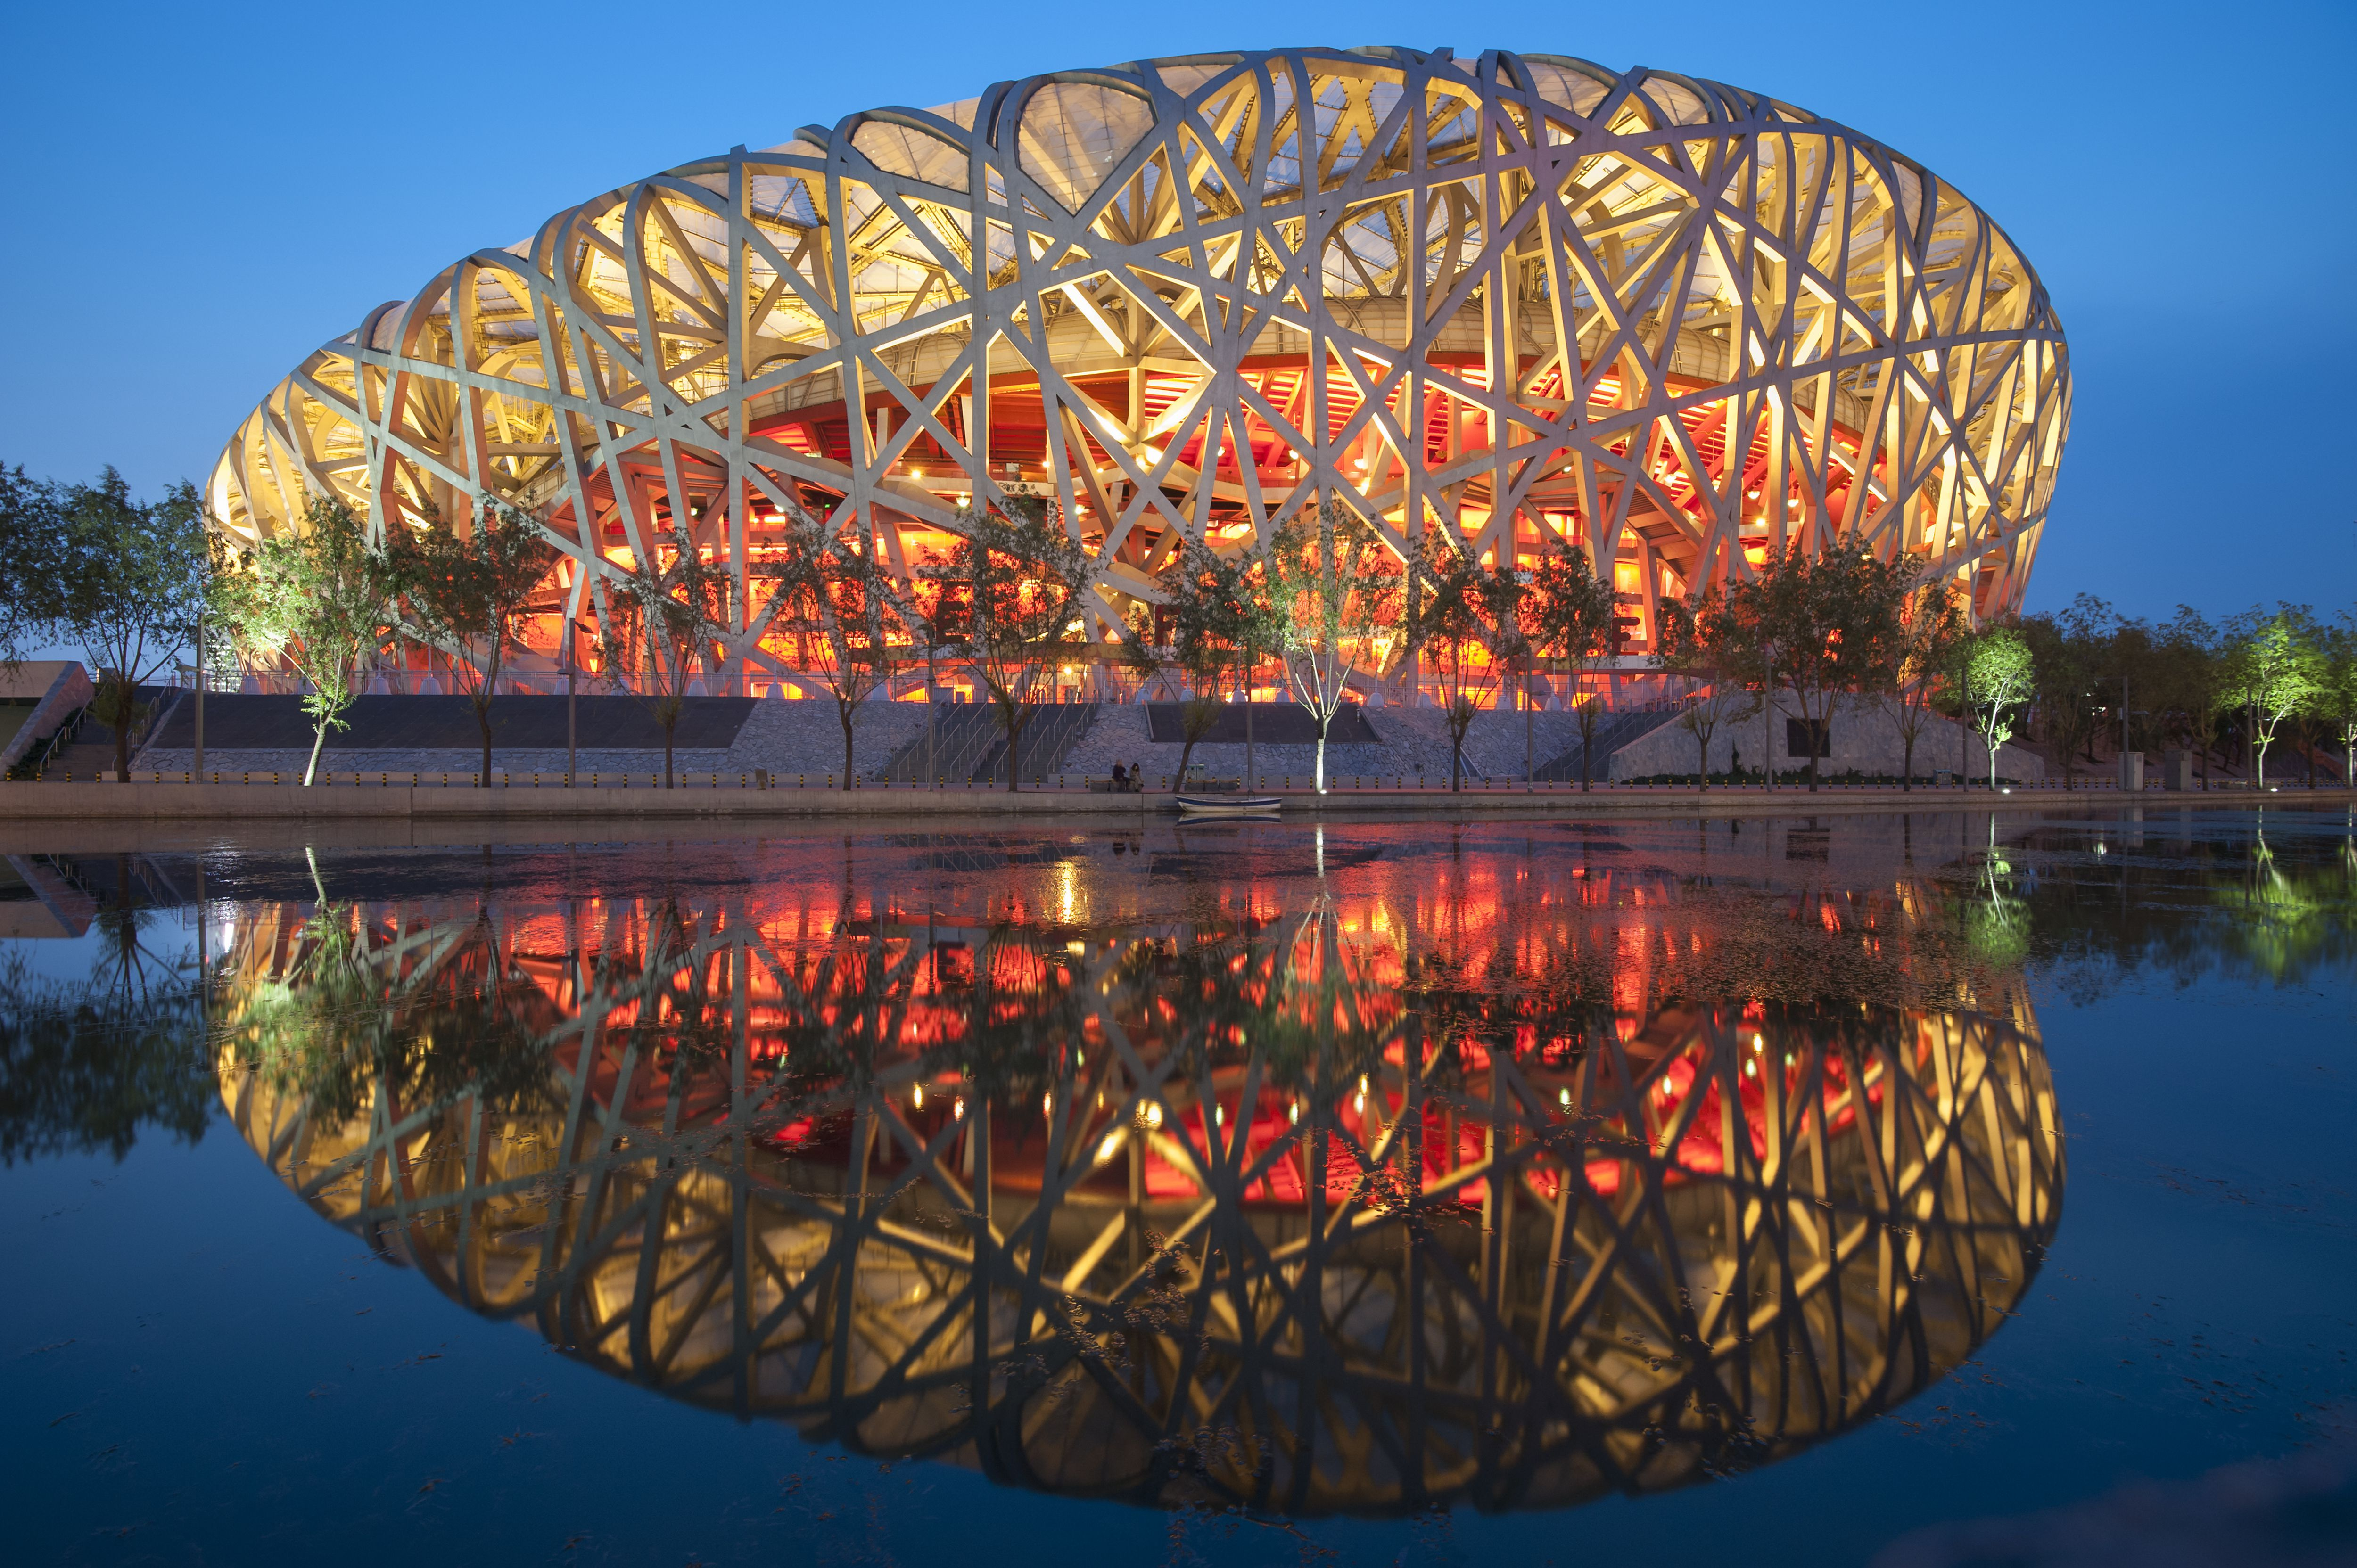 Dusk view of Olympic Stadium, asymmetric with braces obvious and decorative